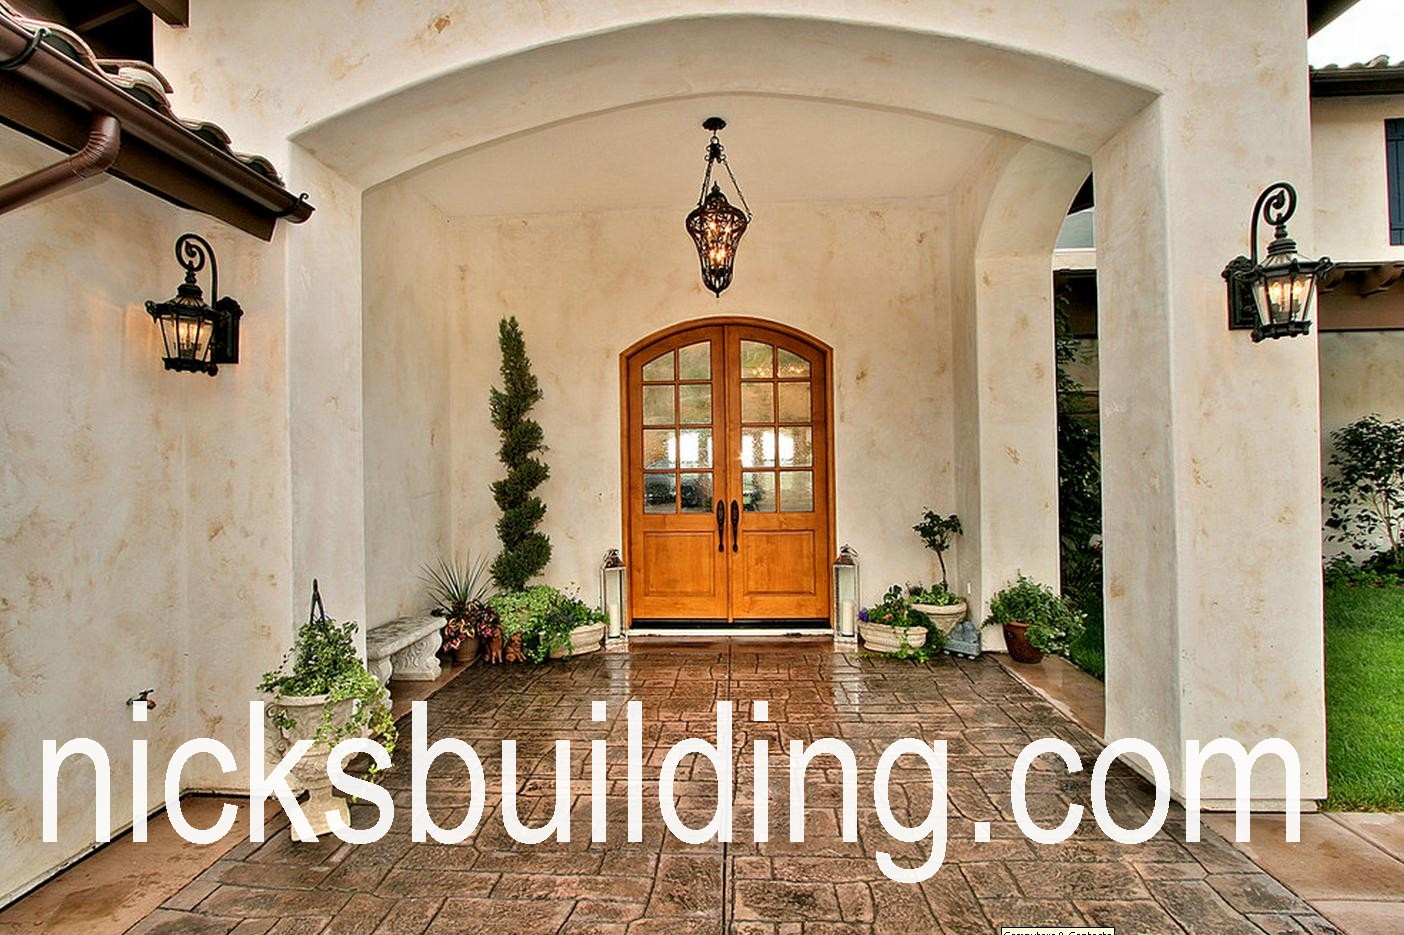 935 #B34F09 DOORS ALDER DOORS Mediterranean Doors OLD WORLD DOORS EXTERIOR DOORS  picture/photo Mediterranean Entry Doors 44691404